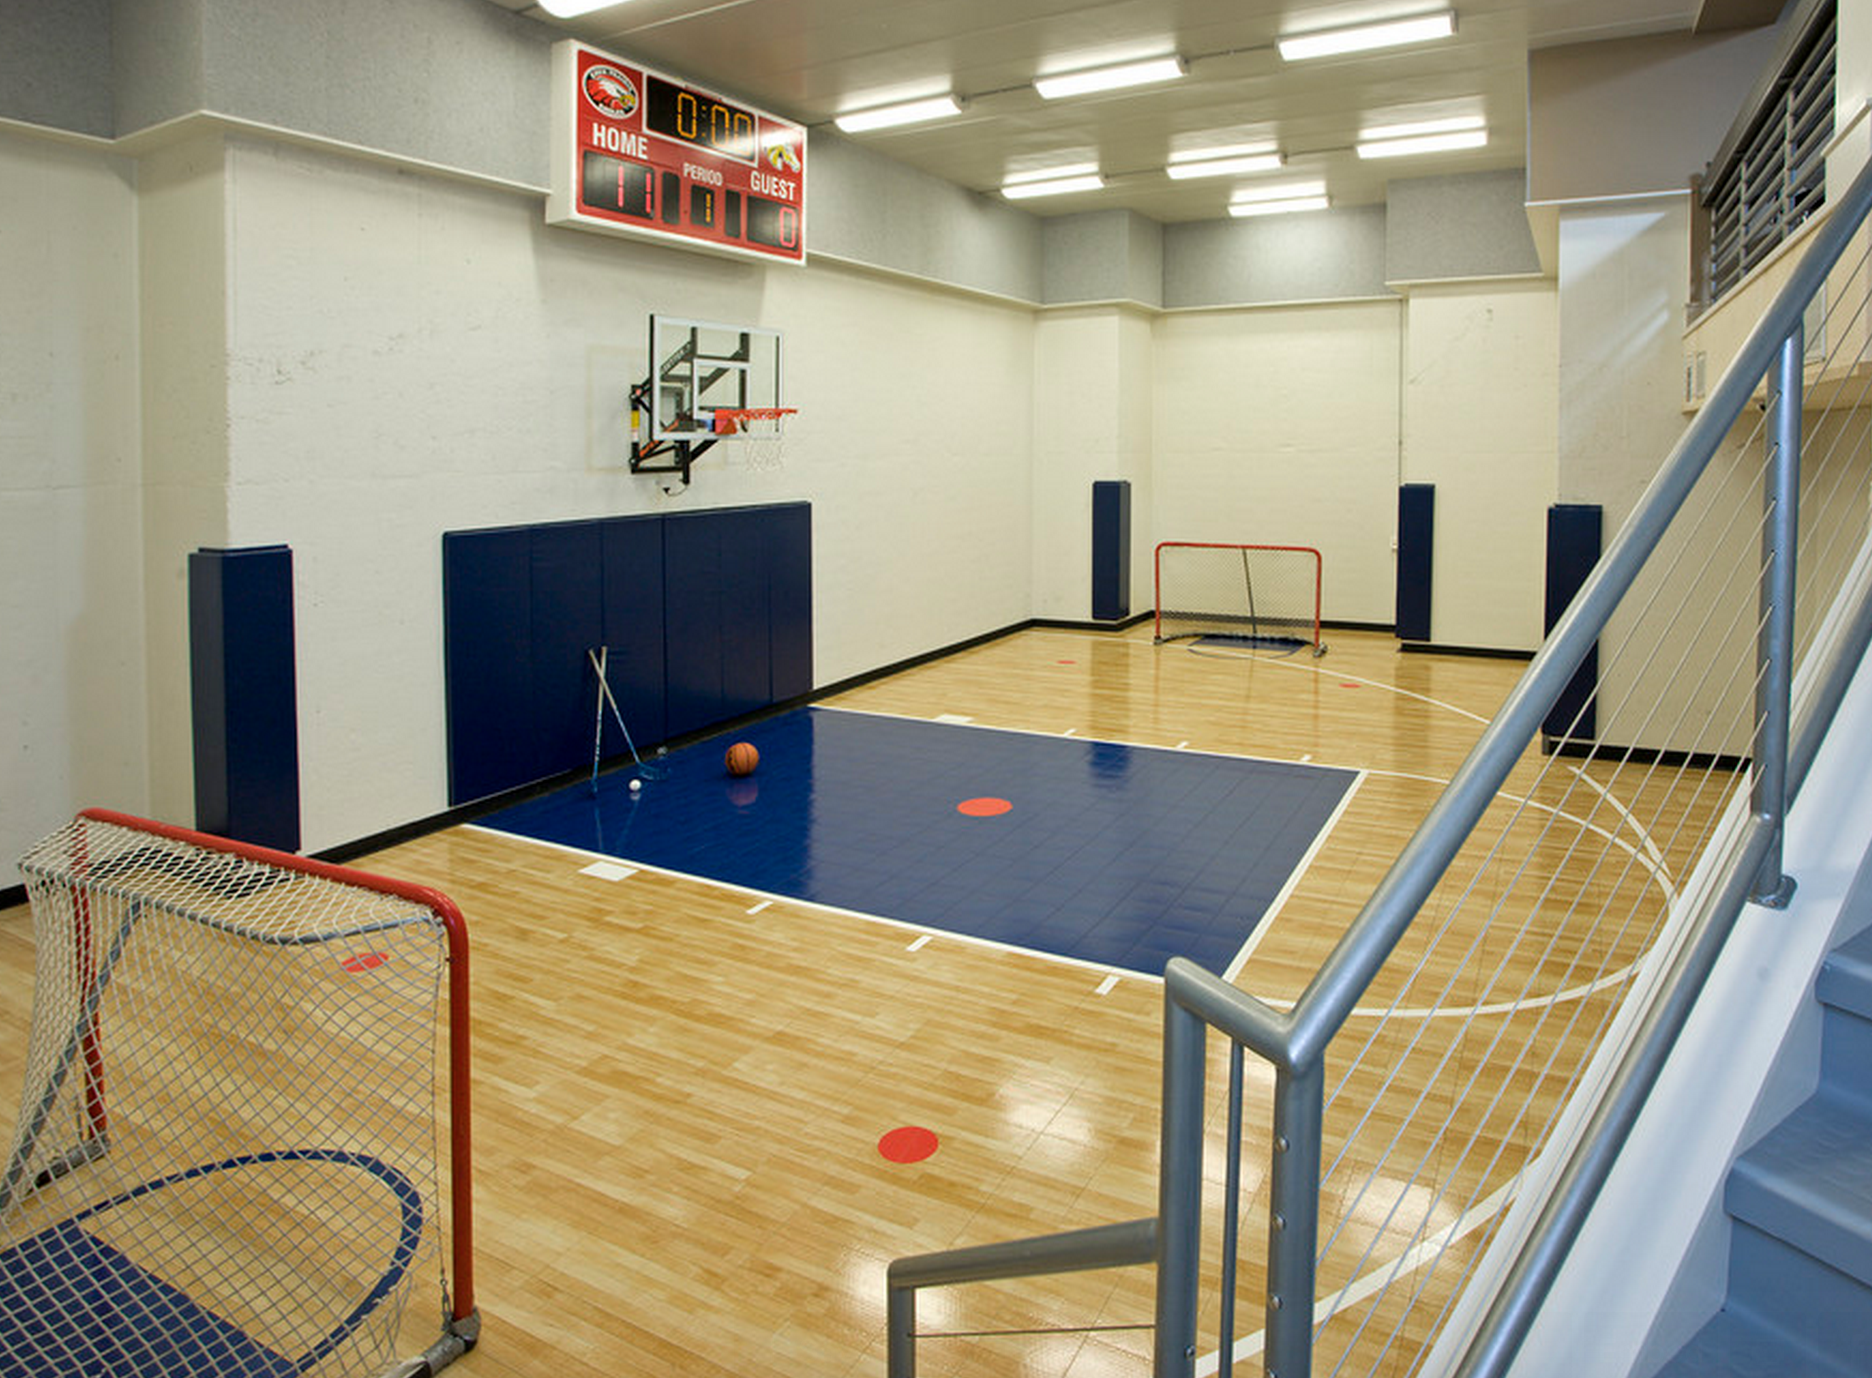 So much room for activities! SportCourt HomeInspiration